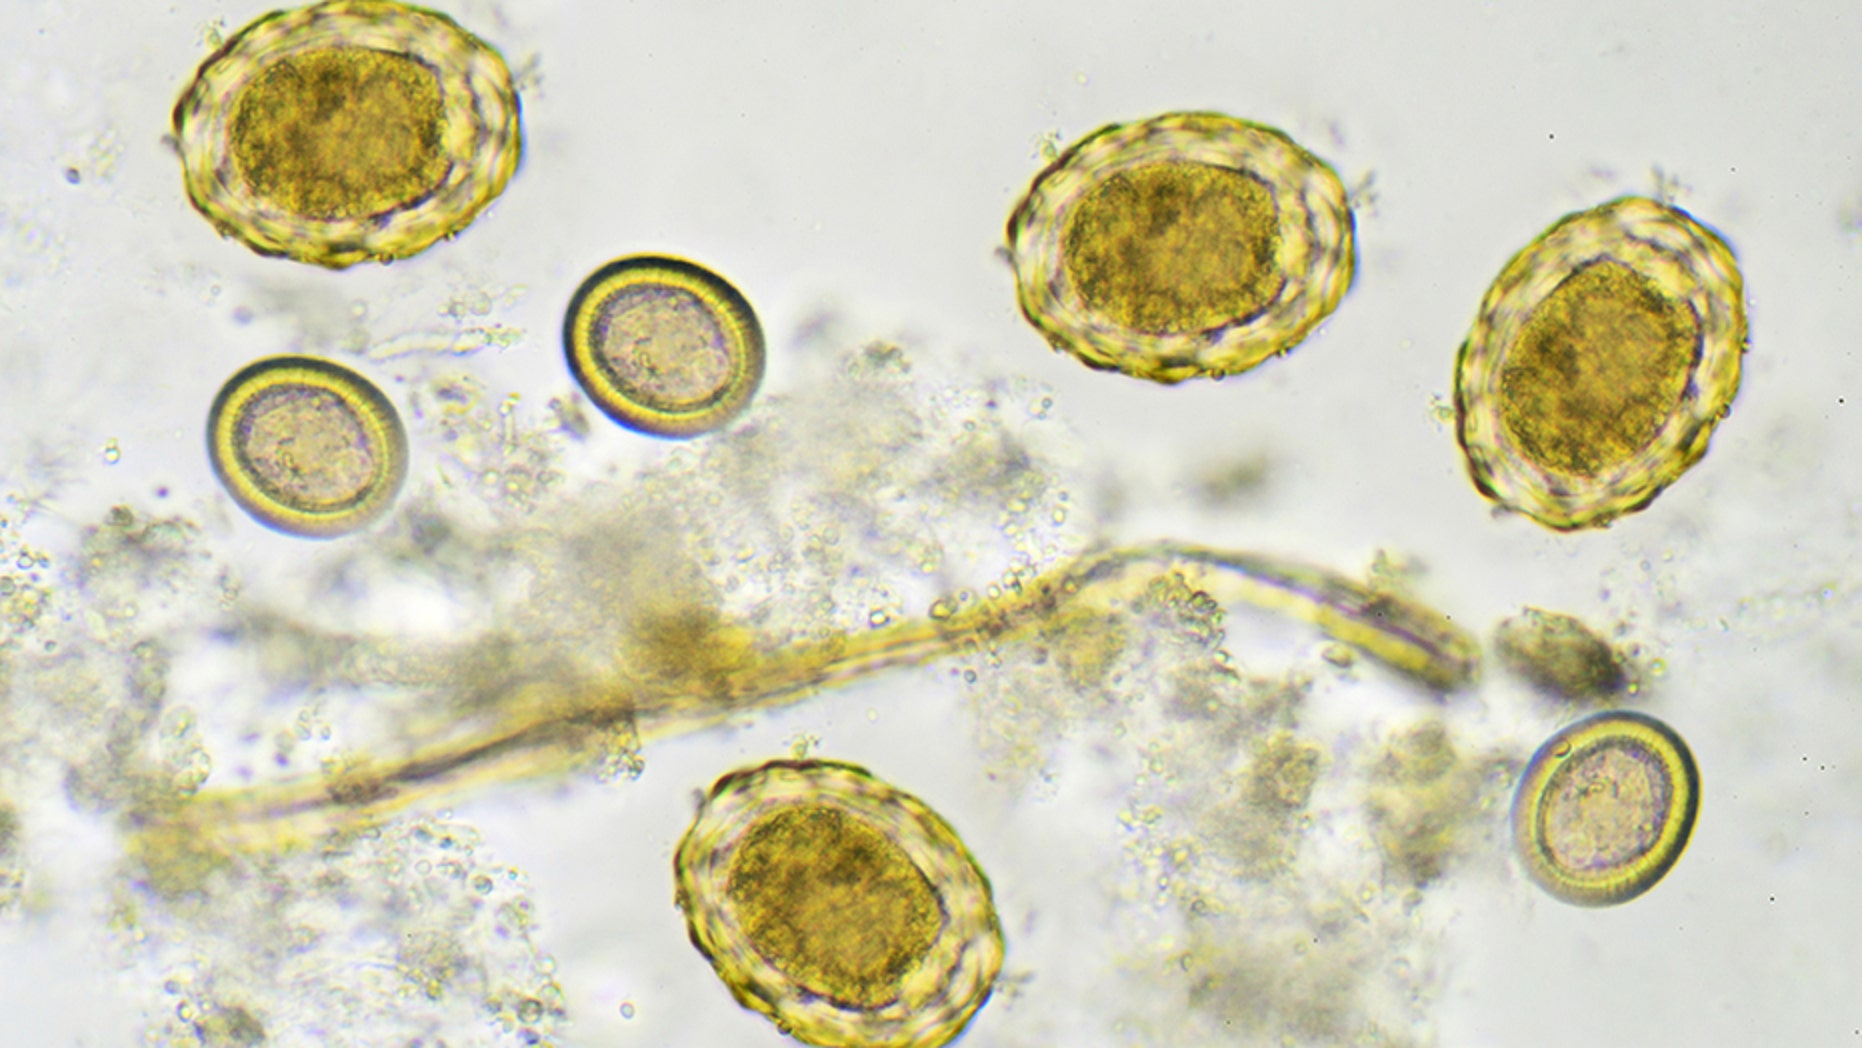 Eggs of helminthes in stool, analyze by microscope